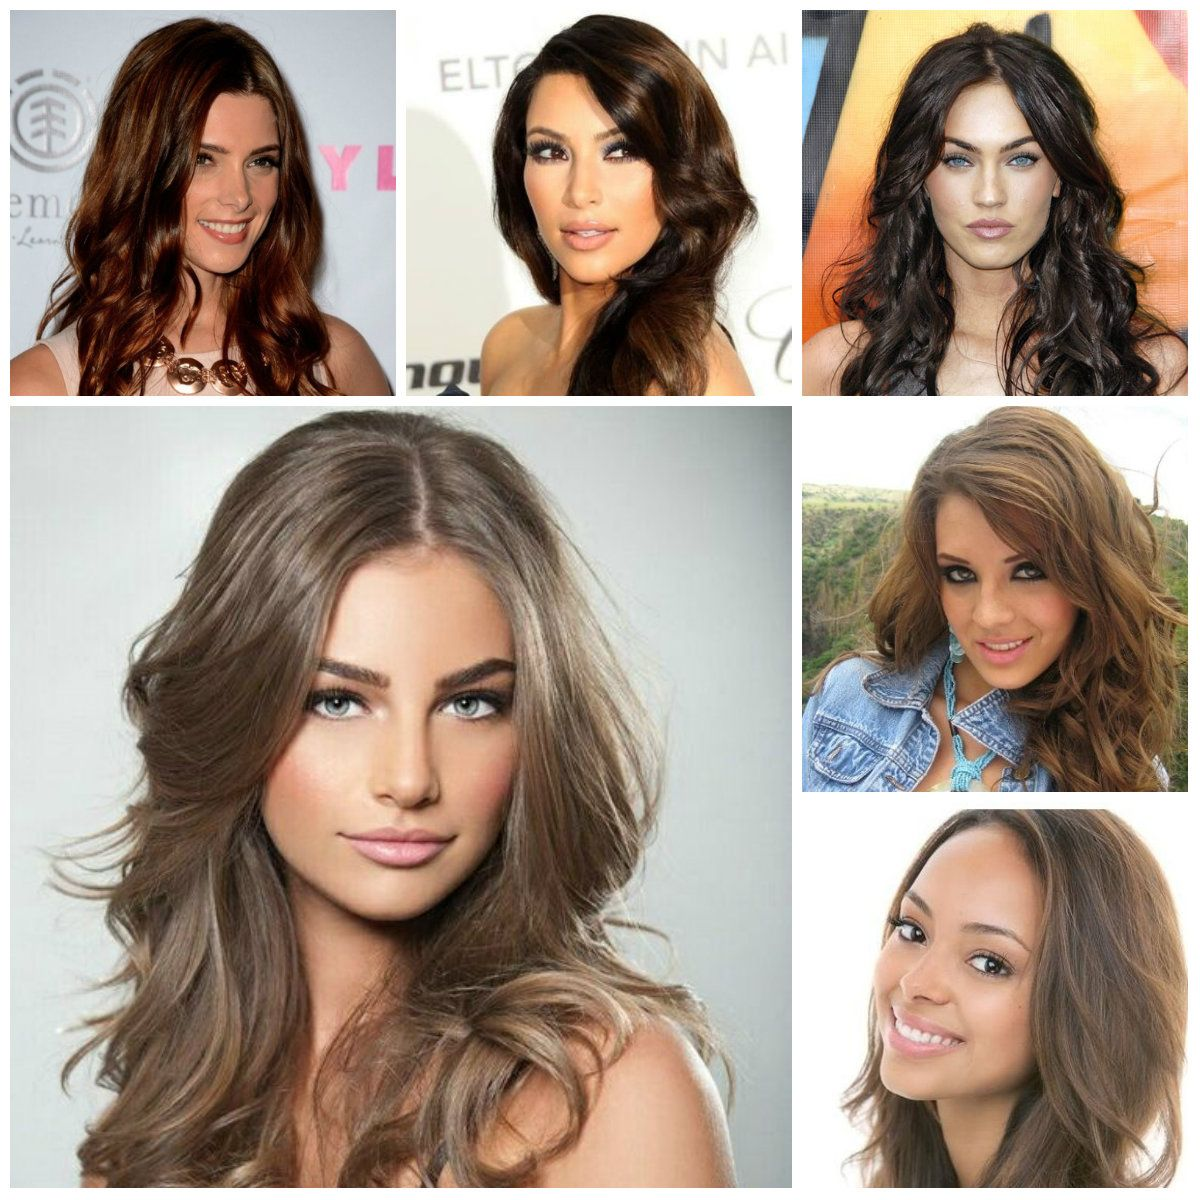 Brown hair color hair colors 2017 trends and ideas for your hair - Hottest Brown Hair Color Ideas For 2017 Haircuts Hairstyles 2017 And Hair